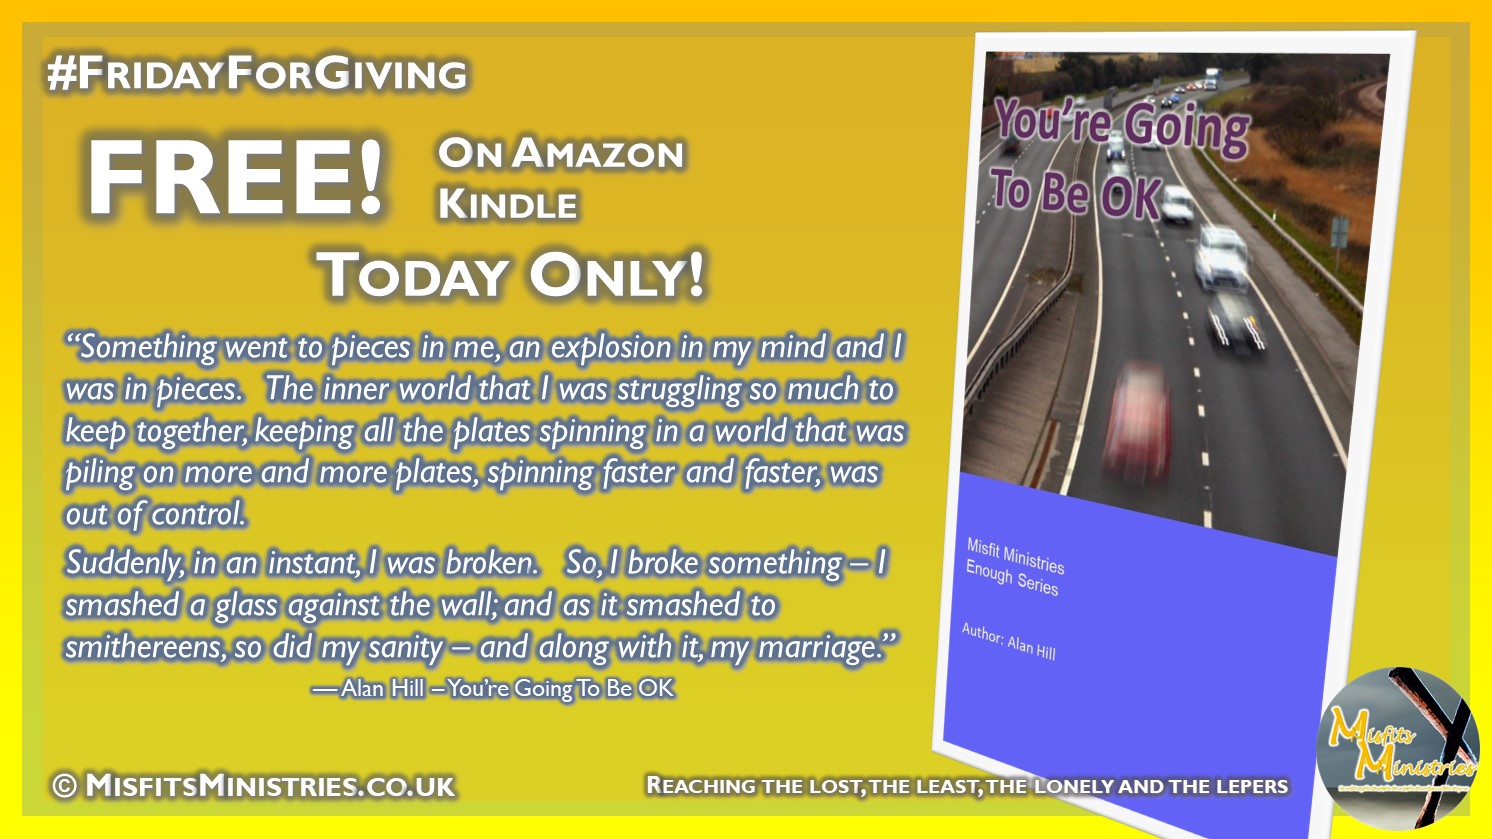 FridayForGiving - You're Going To Be OK - Kindle version